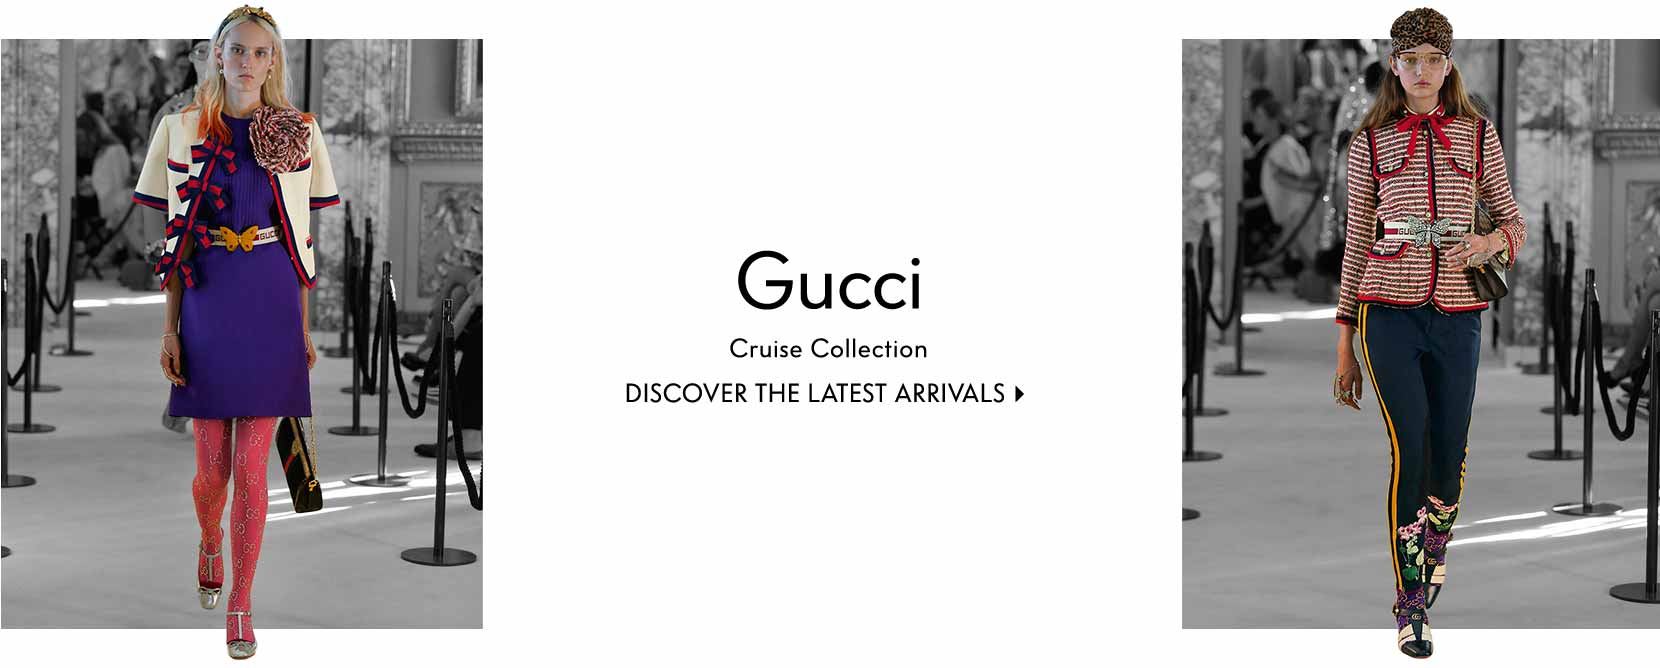 Gucci cruise collection discover the latest arrivals